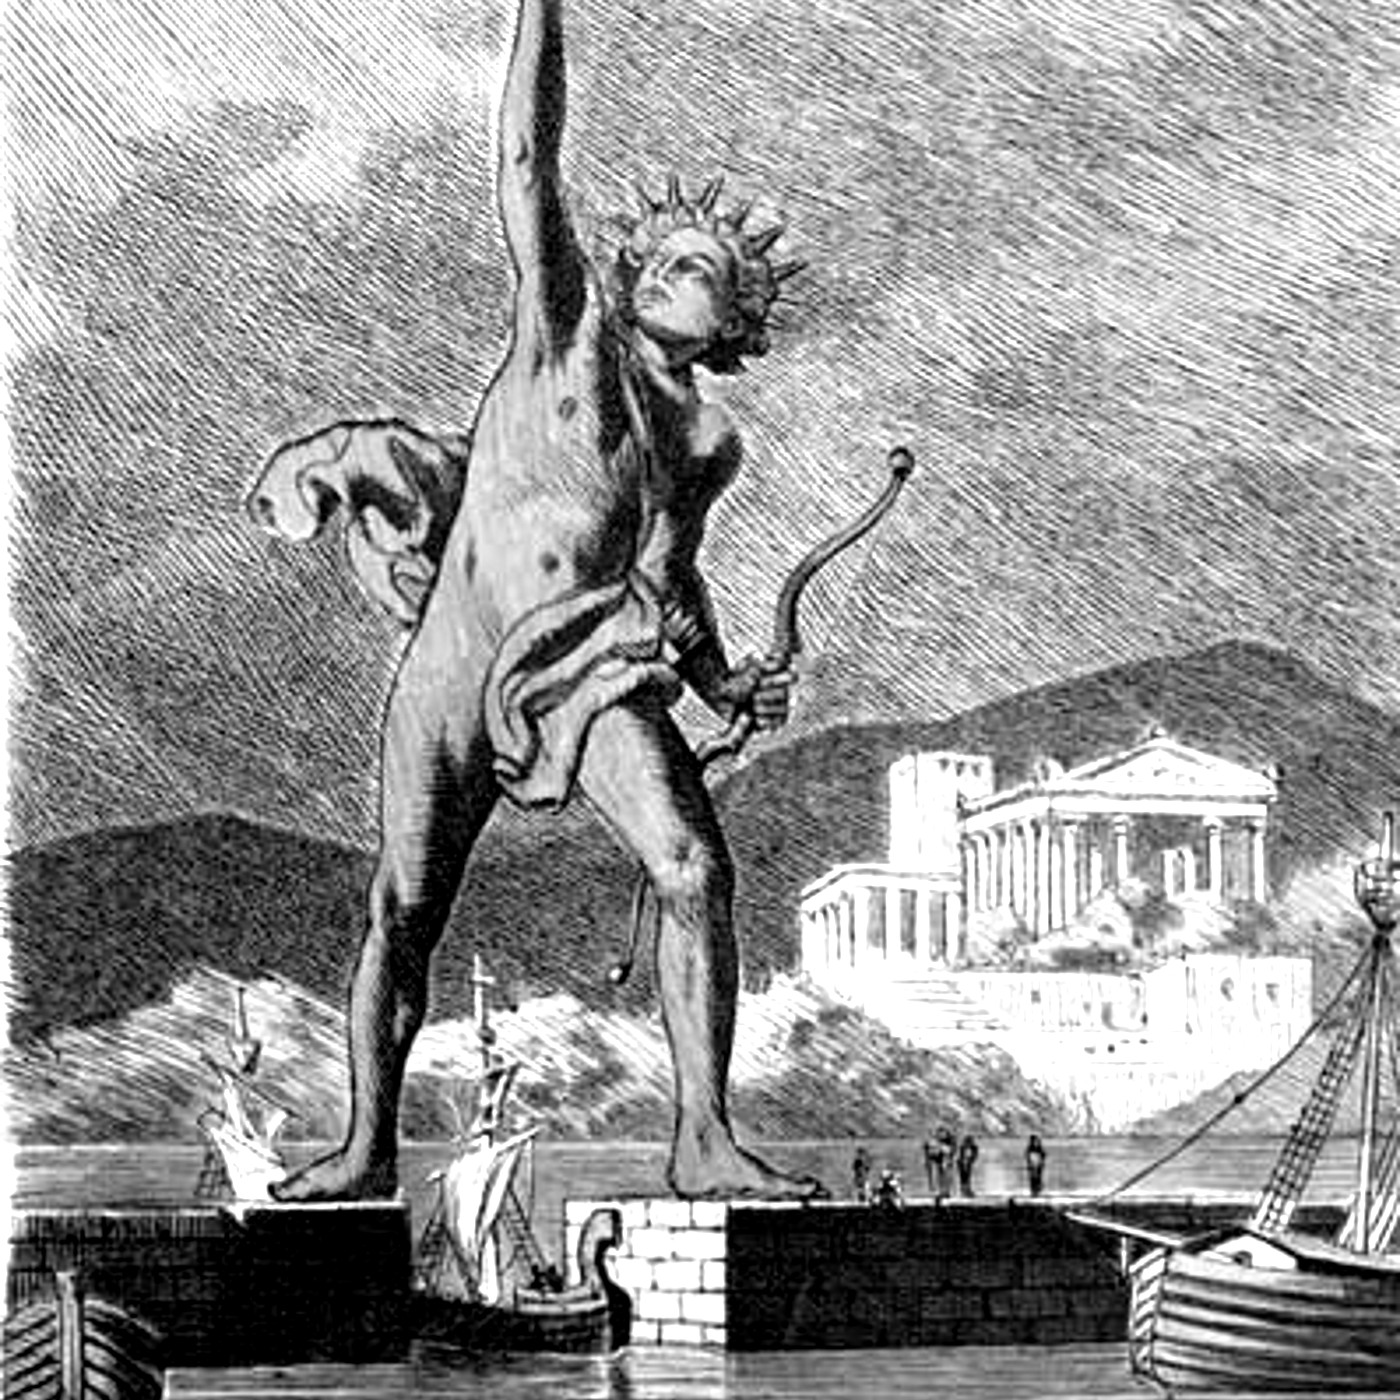 Episode 87 - The Colossus of Rhodes show art